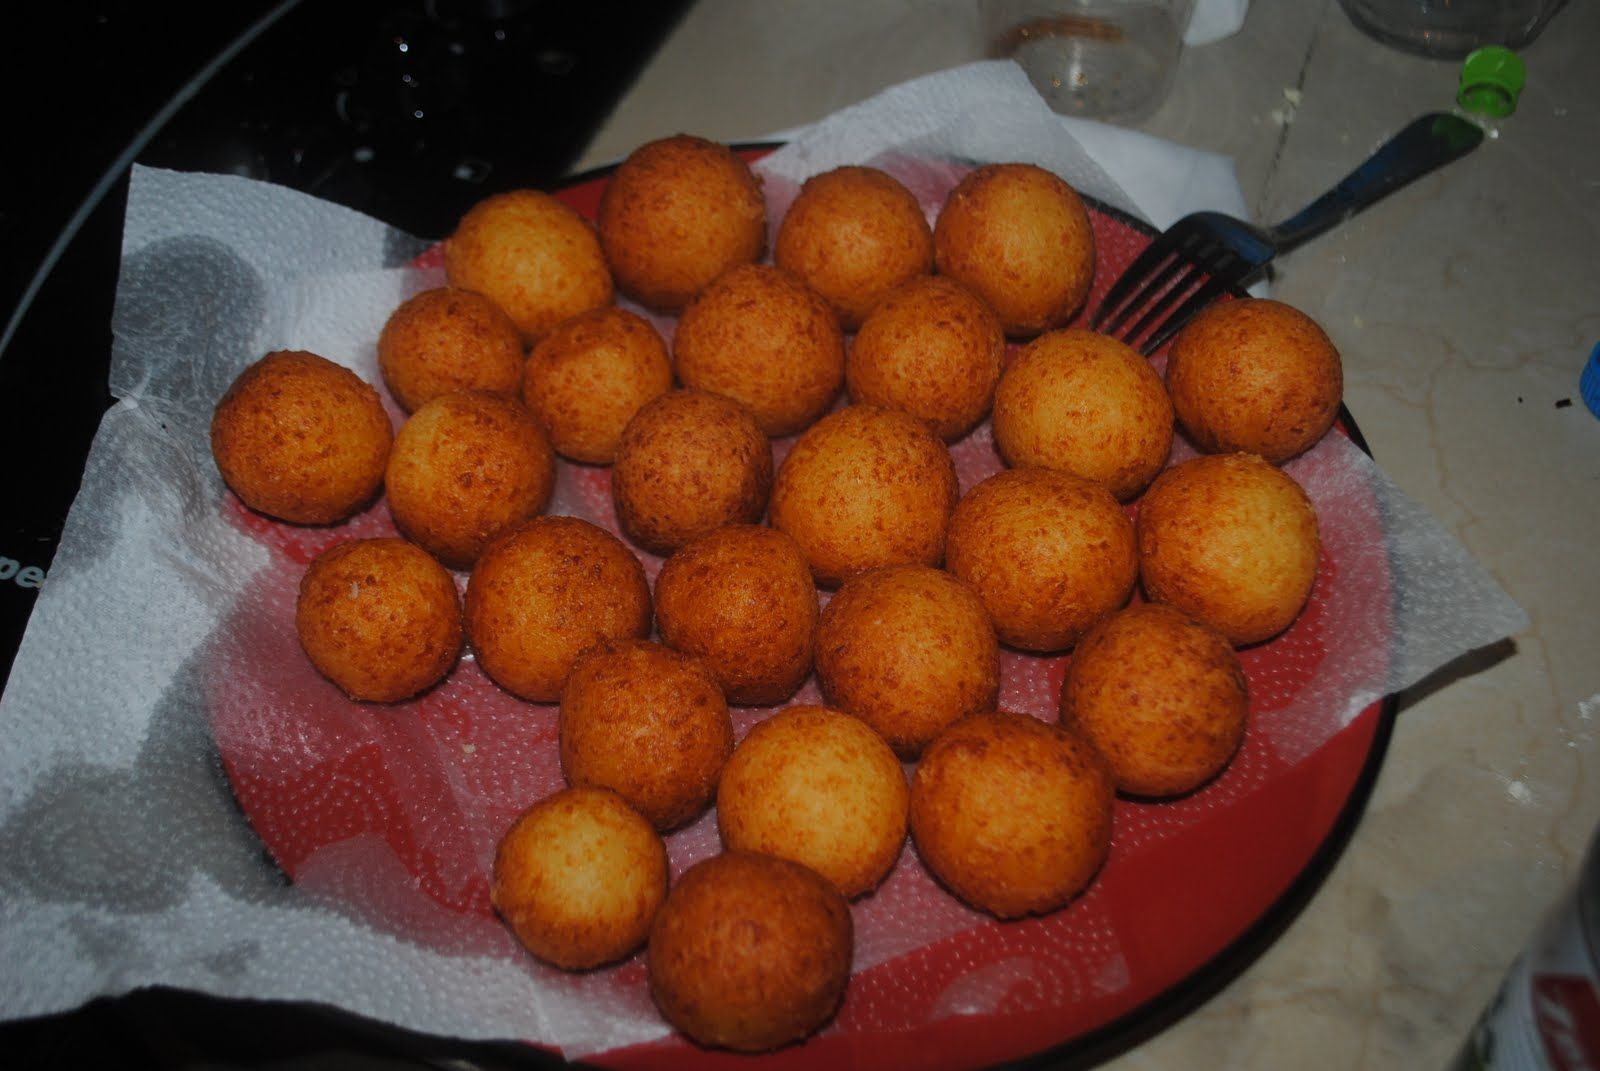 Colombian Buñuelos: a typical dish made of a wheat-based yeast dough. It is mixed with white salted cheese and eaten with Natilla.